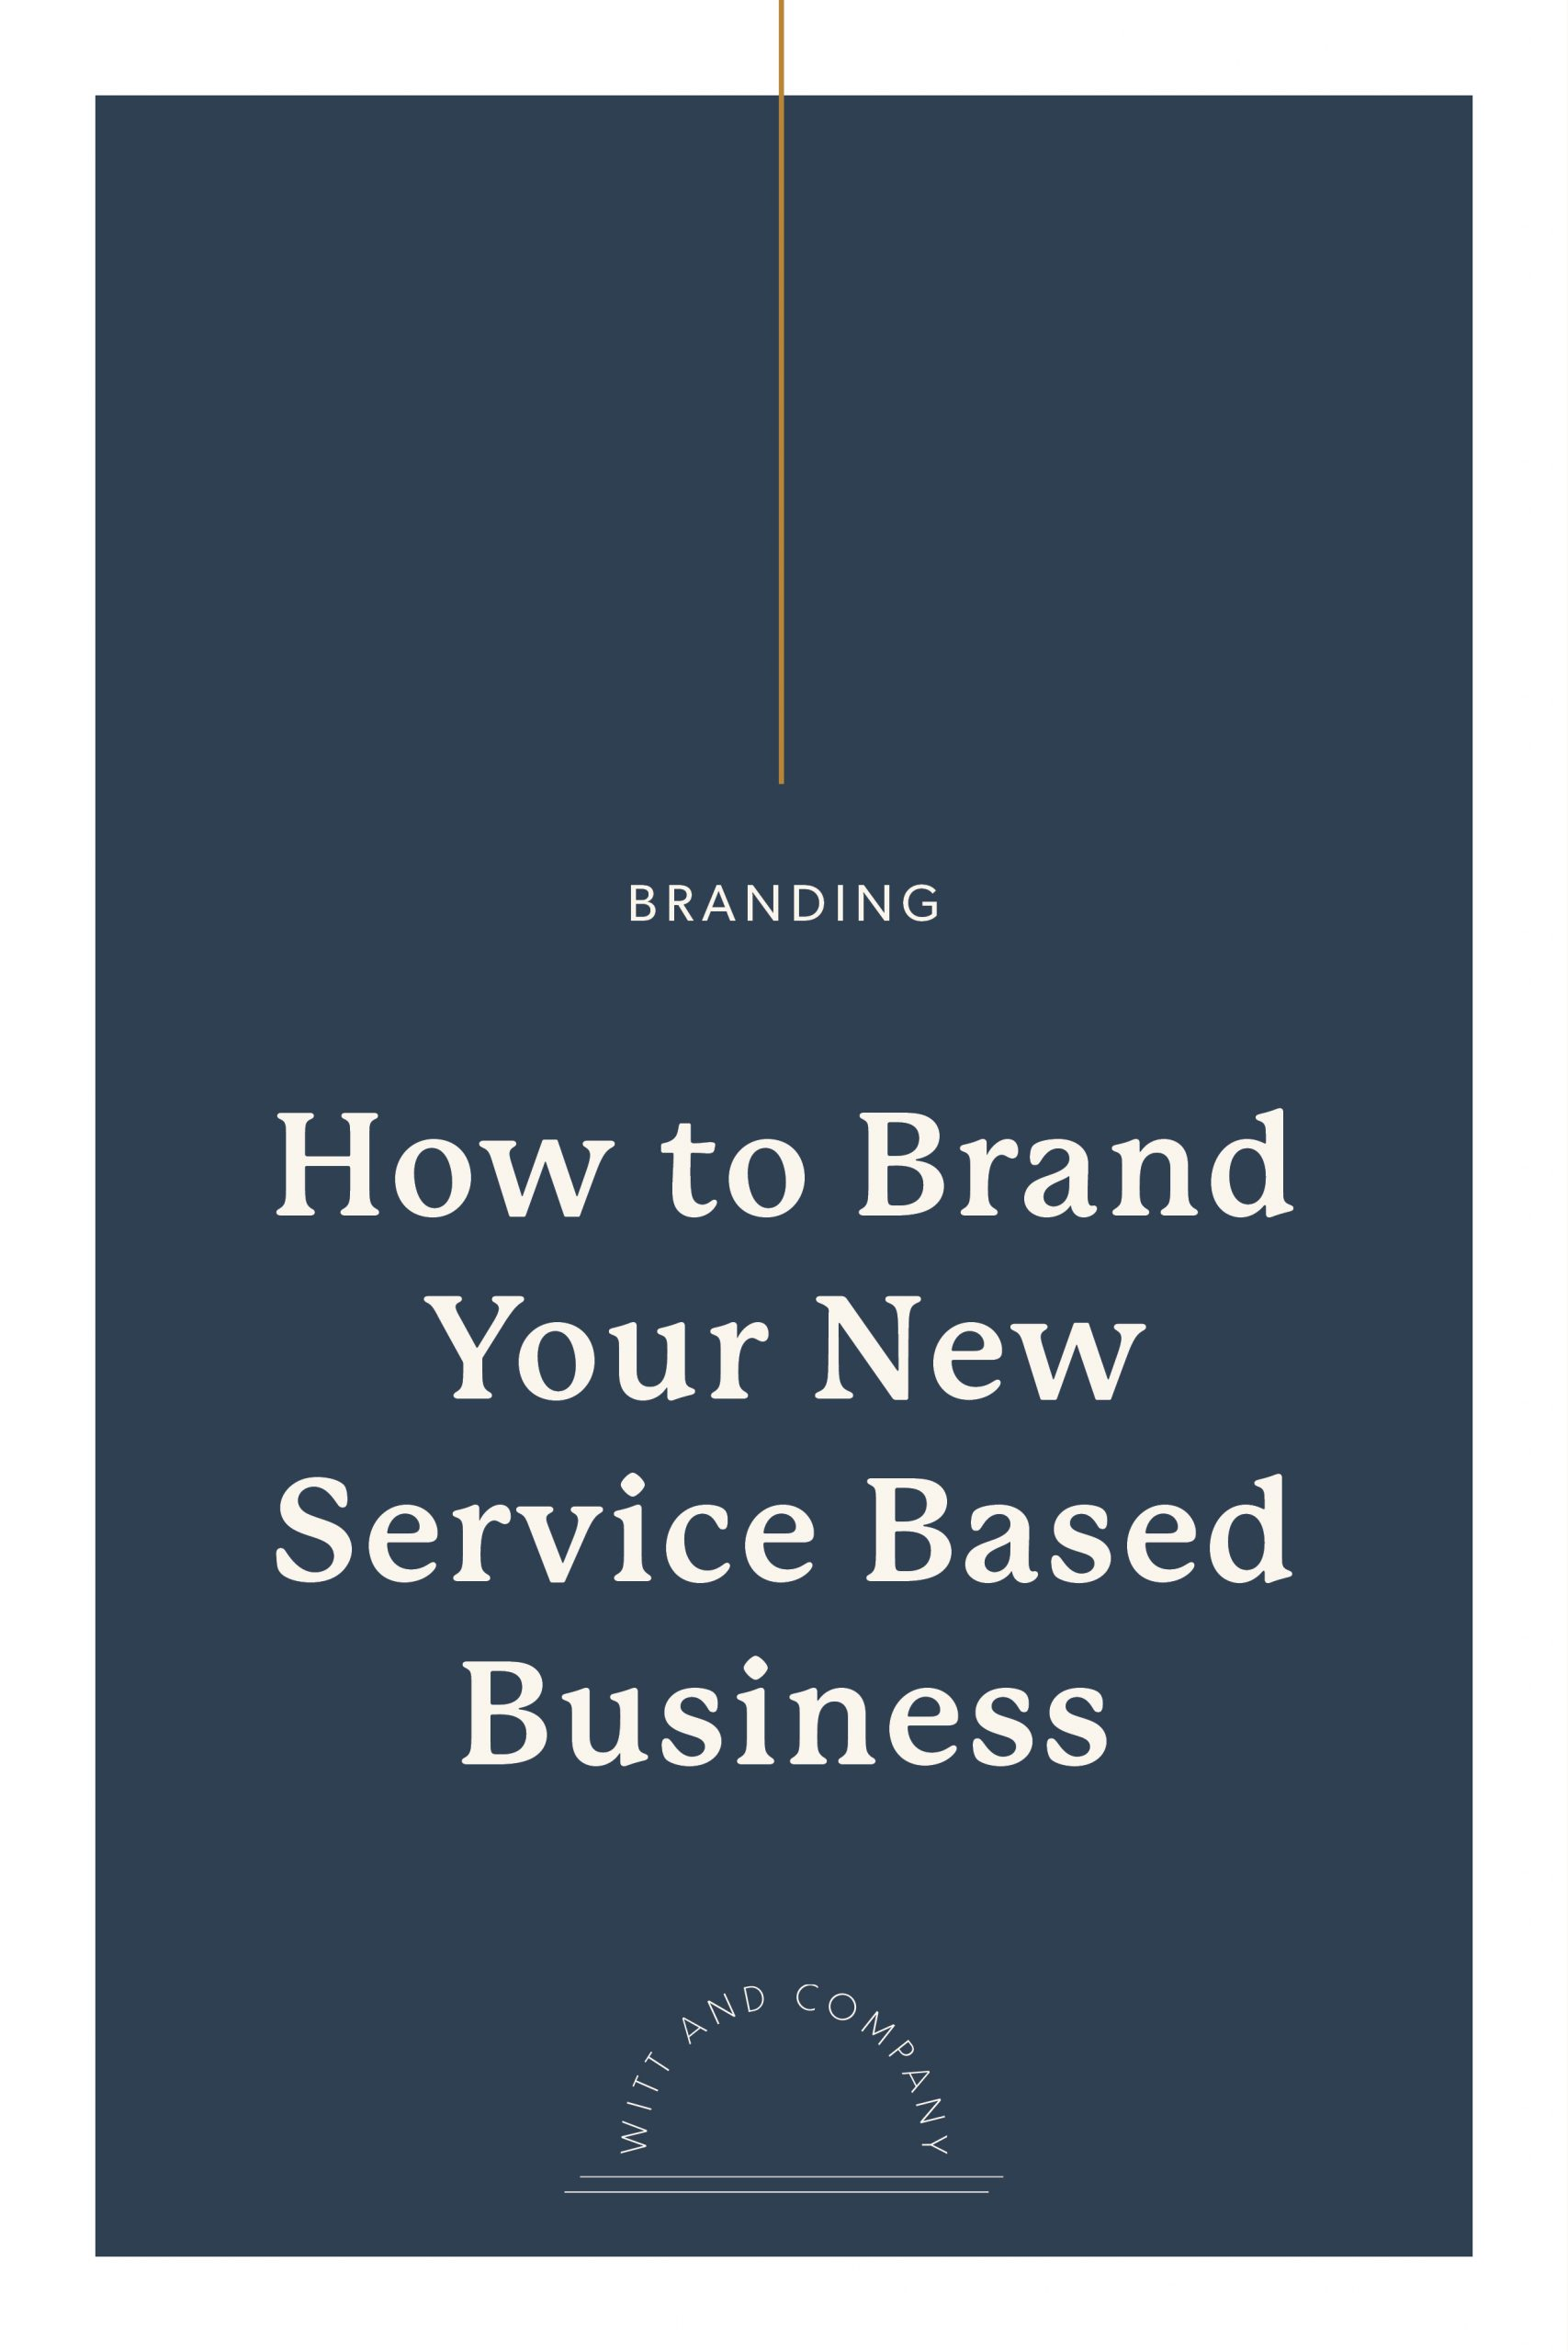 Step Two: How to Brand Your New Service Based Business